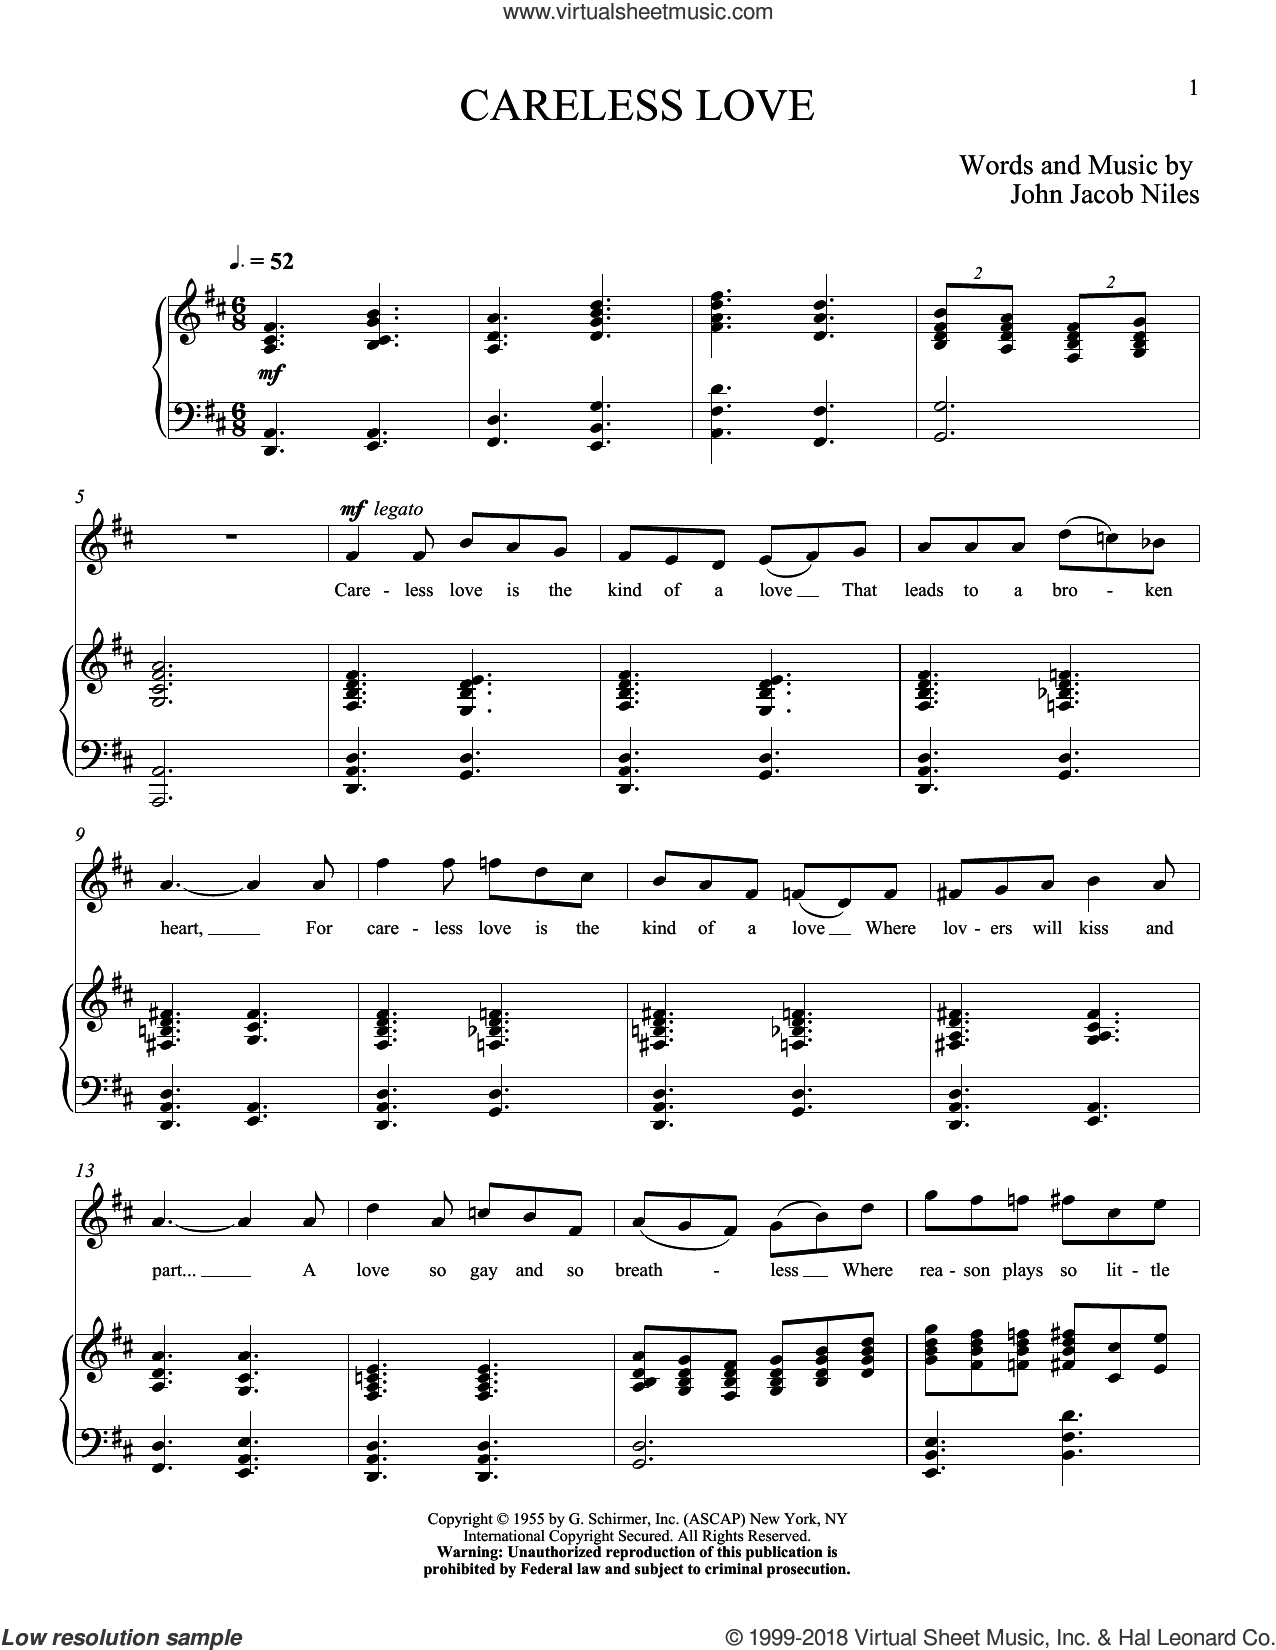 Careless Love sheet music for voice and piano (High ) by John Jacob Niles